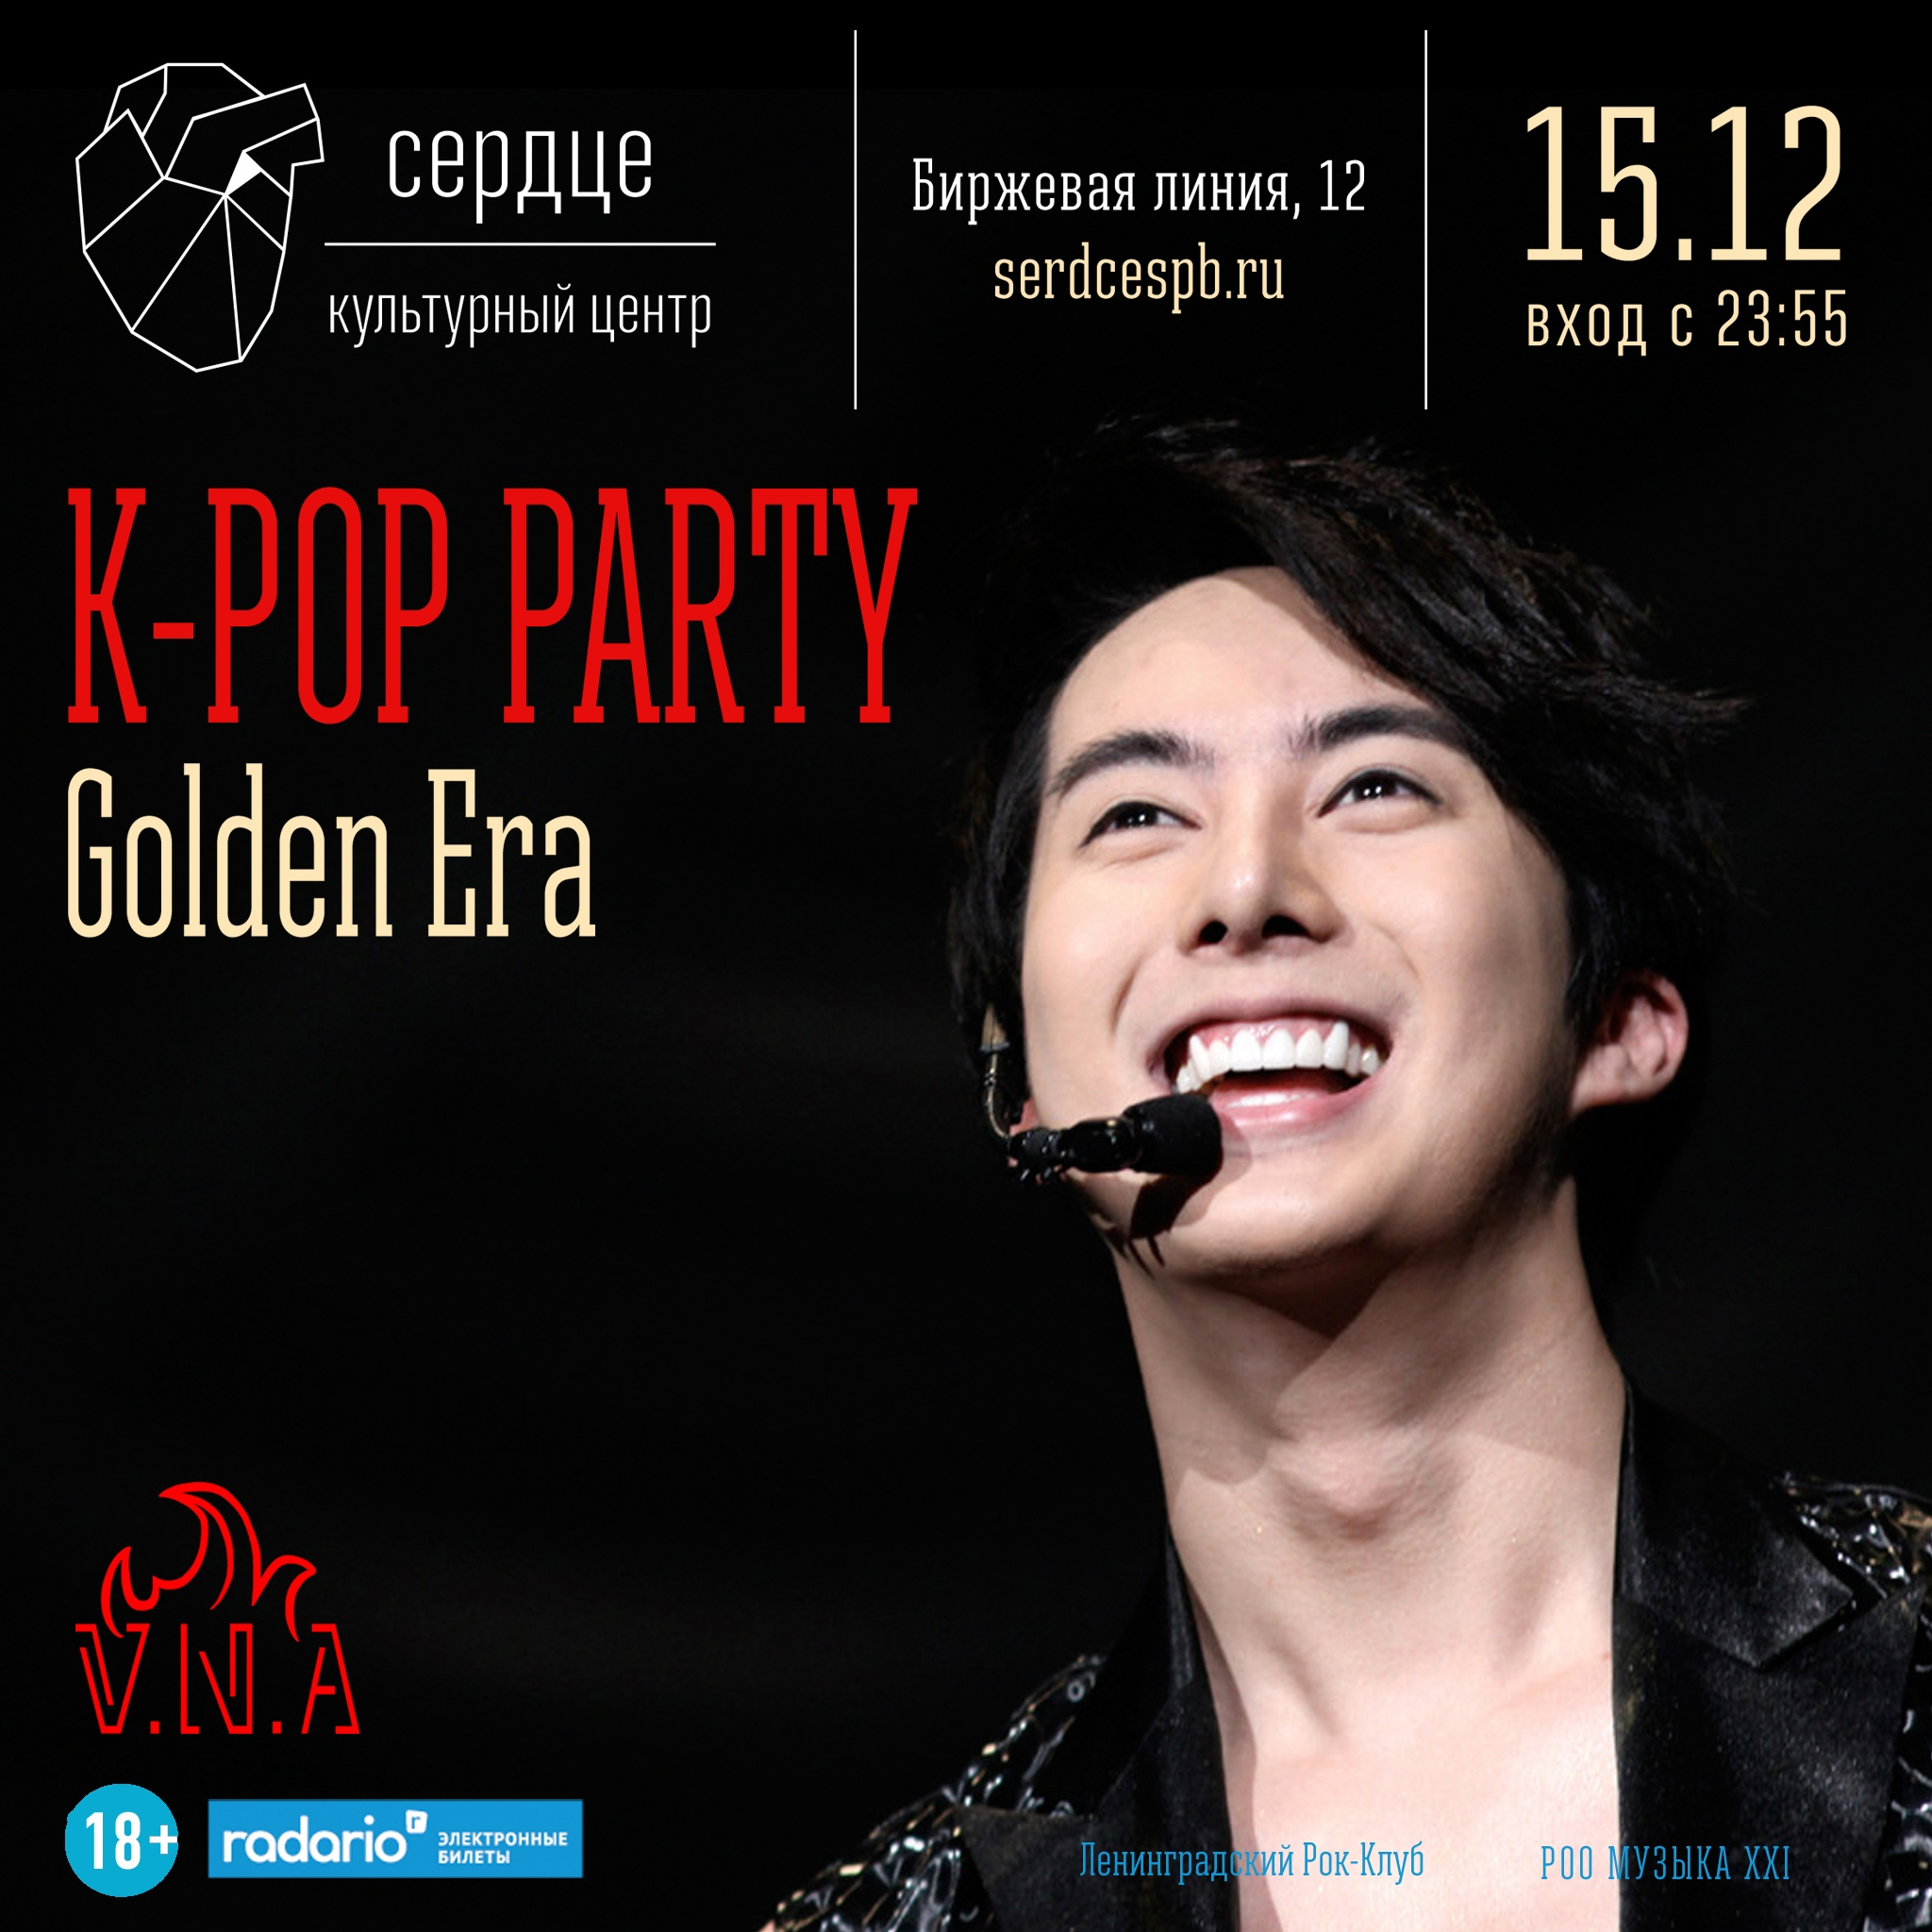 K-POP PARTY: GOLDEN ERA | 15.12 | Сердце